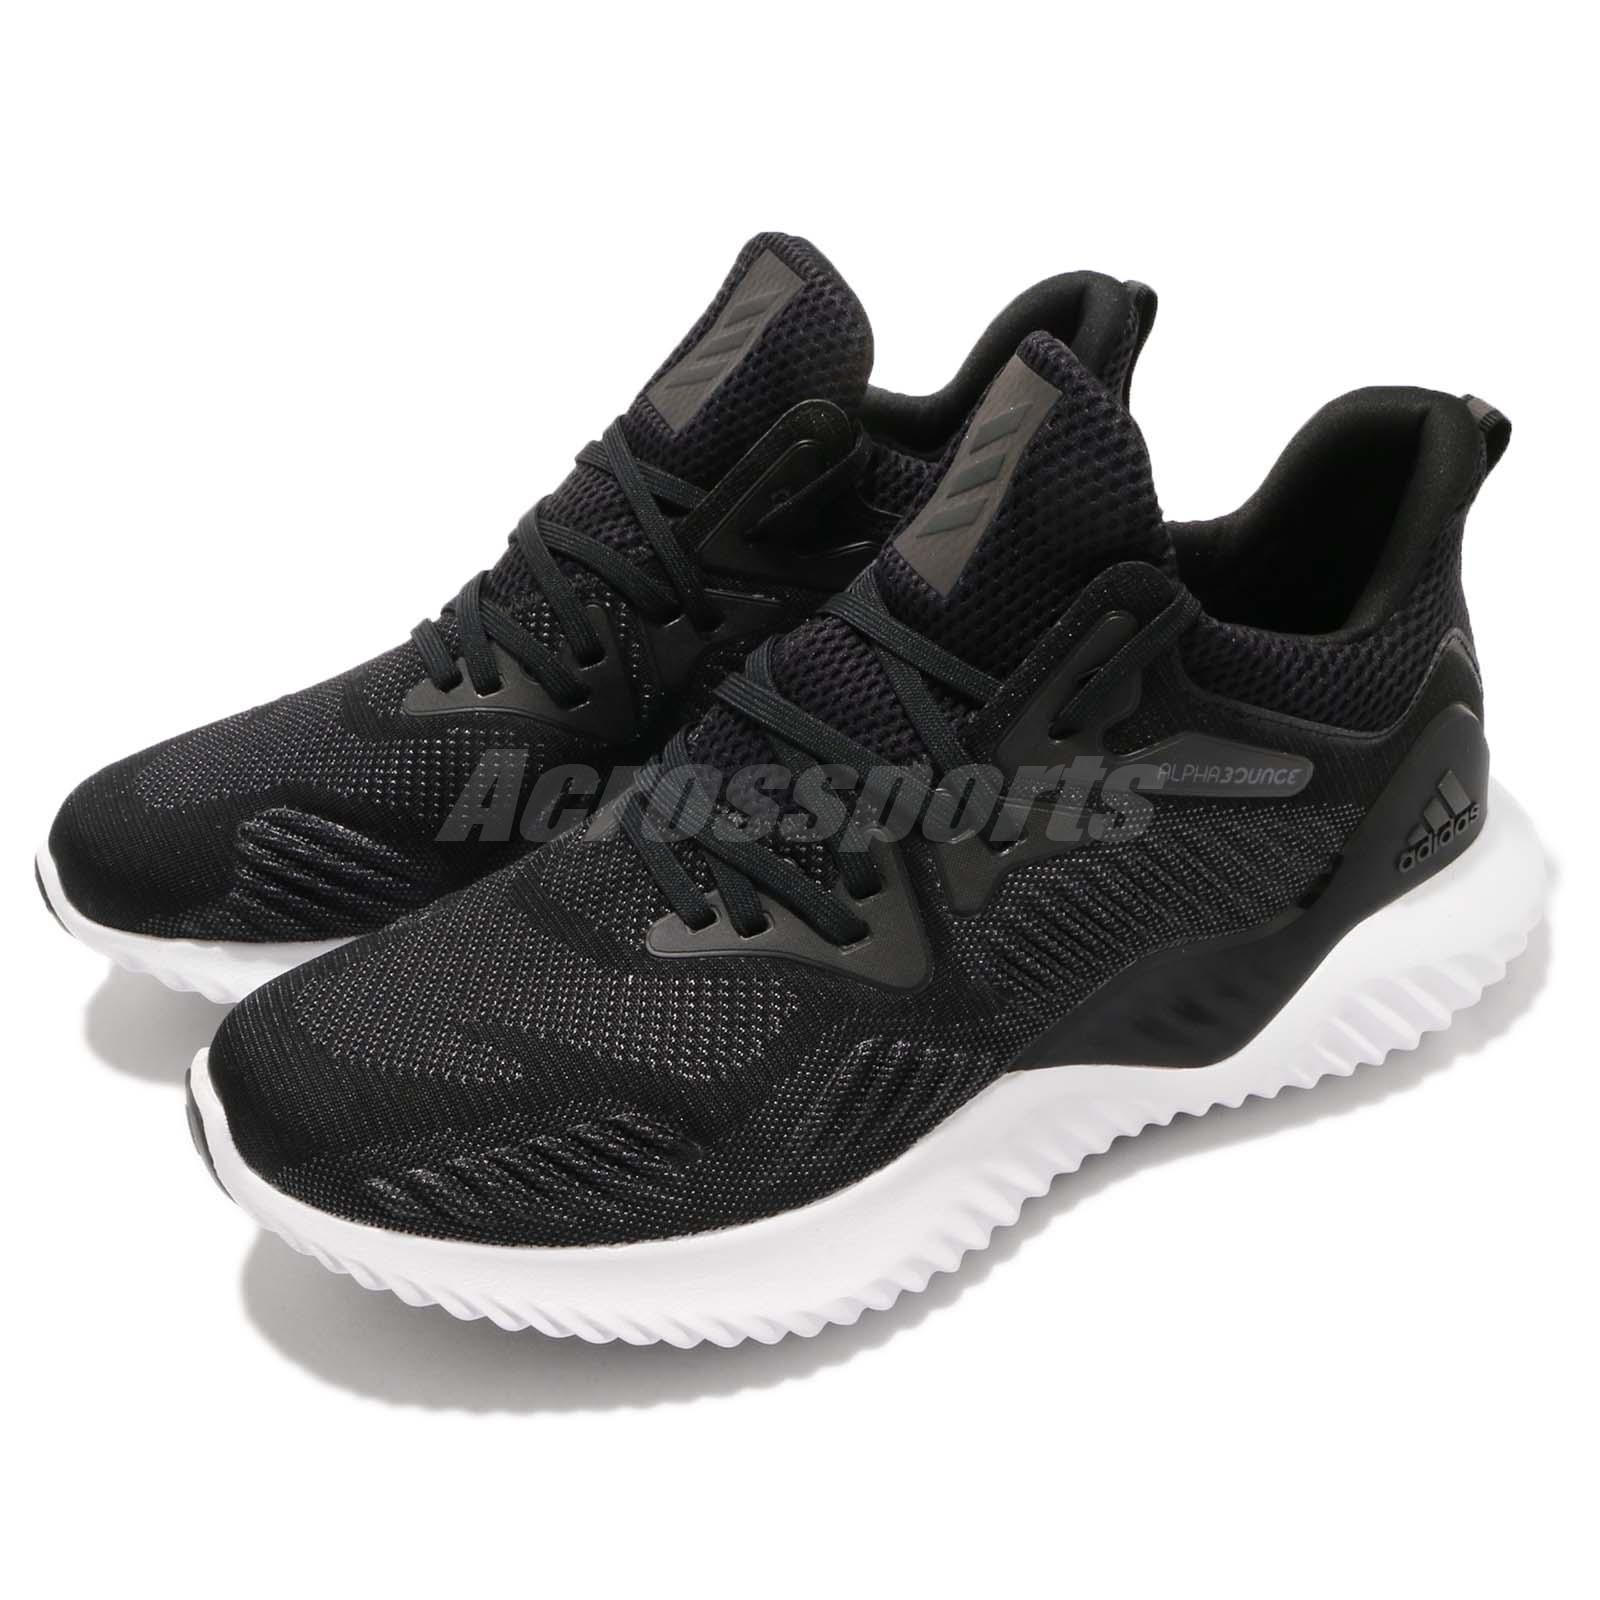 a98e64e974102 Details about adidas Alphabounce Beyond M Bounce Black White Men Running Shoes  Sneakers AC8273